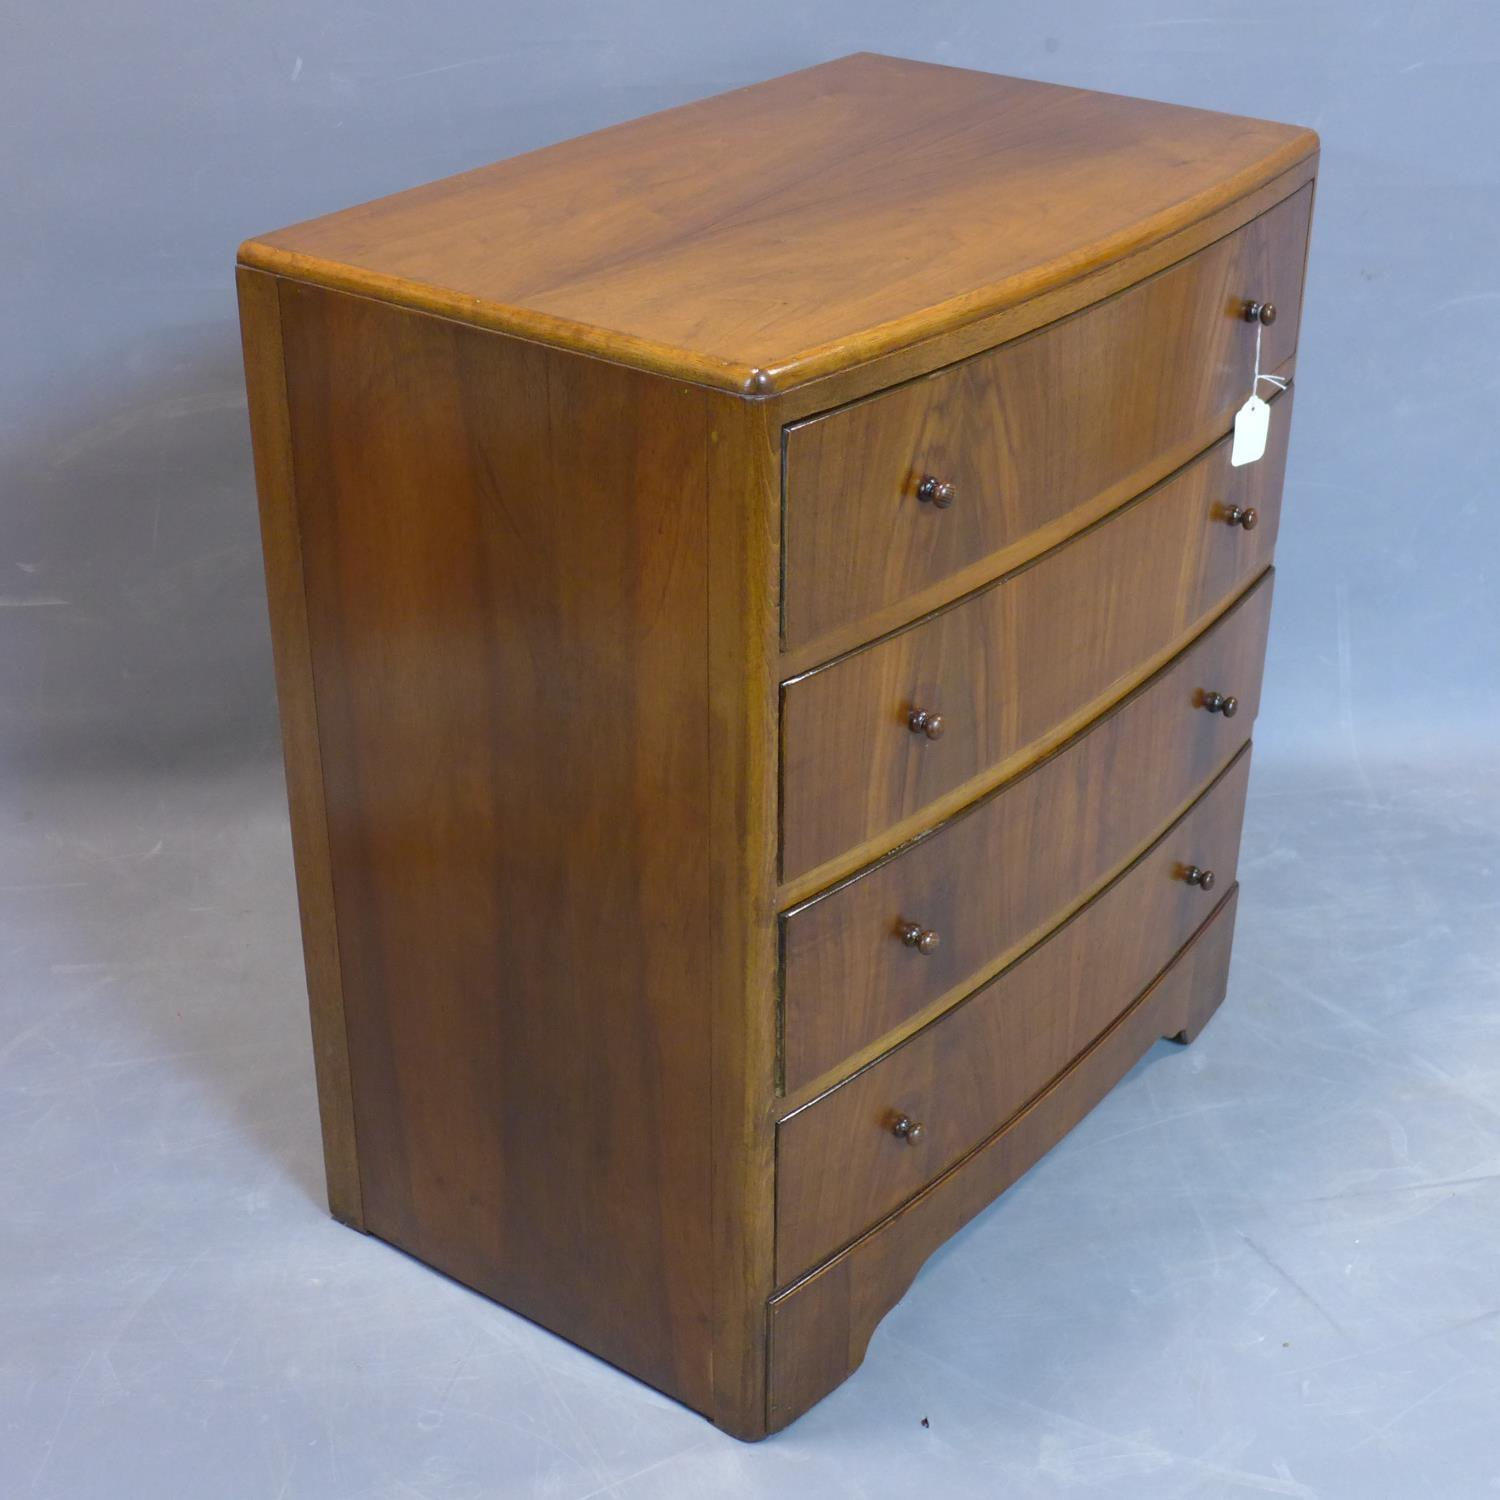 Lot 121 - A walnut bowfronted chest of four drawers, on bracket feet, H.85 W.76 D.48cm